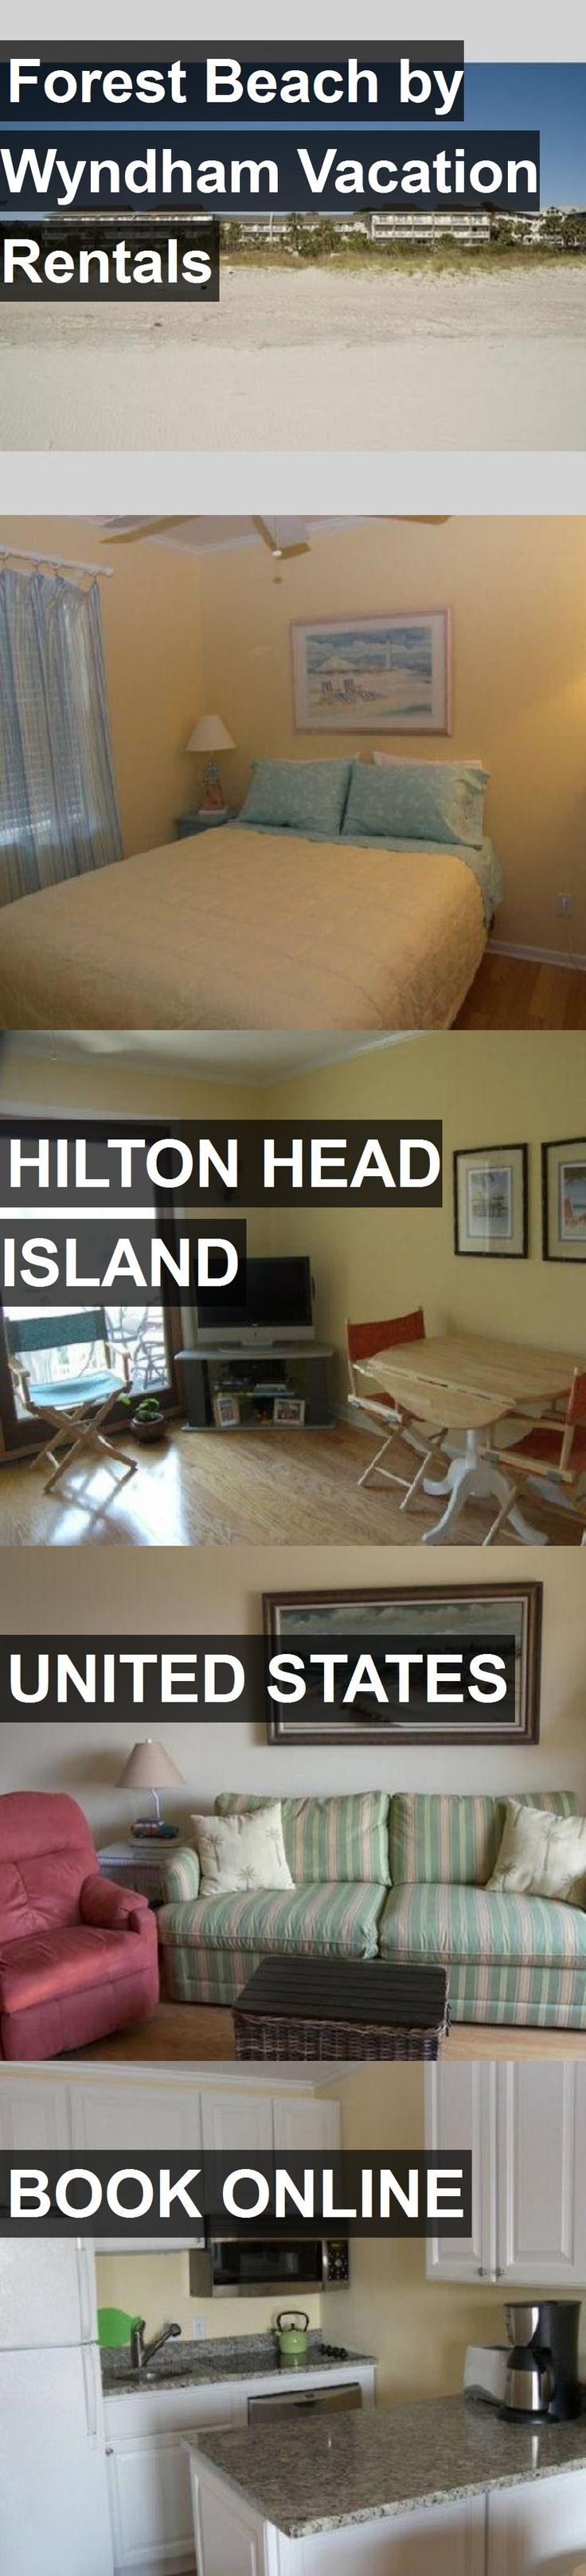 Hotel Forest Beach by Wyndham Vacation Rentals in Hilton Head Island, United States. For more information, photos, reviews and best prices please follow the link. #UnitedStates #HiltonHeadIsland #travel #vacation #hotel